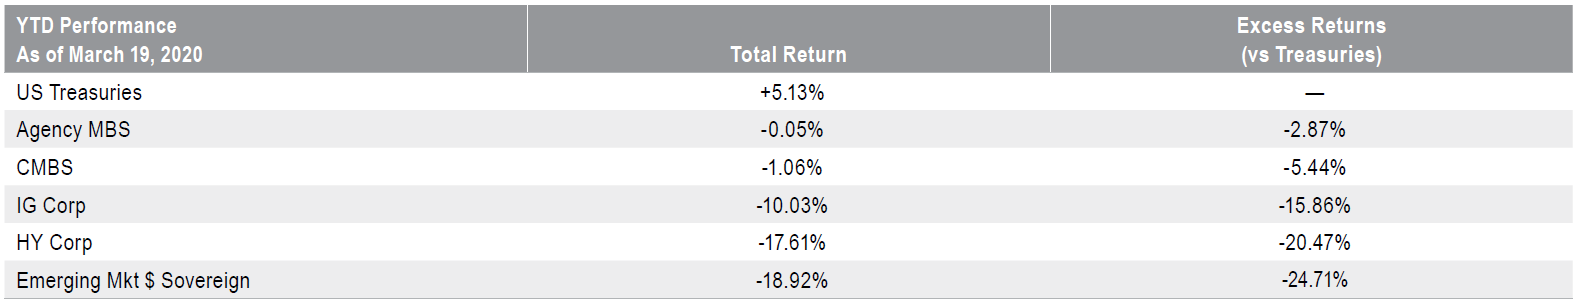 Portfolio Performance: Year-to-Date as of March 19, 2020